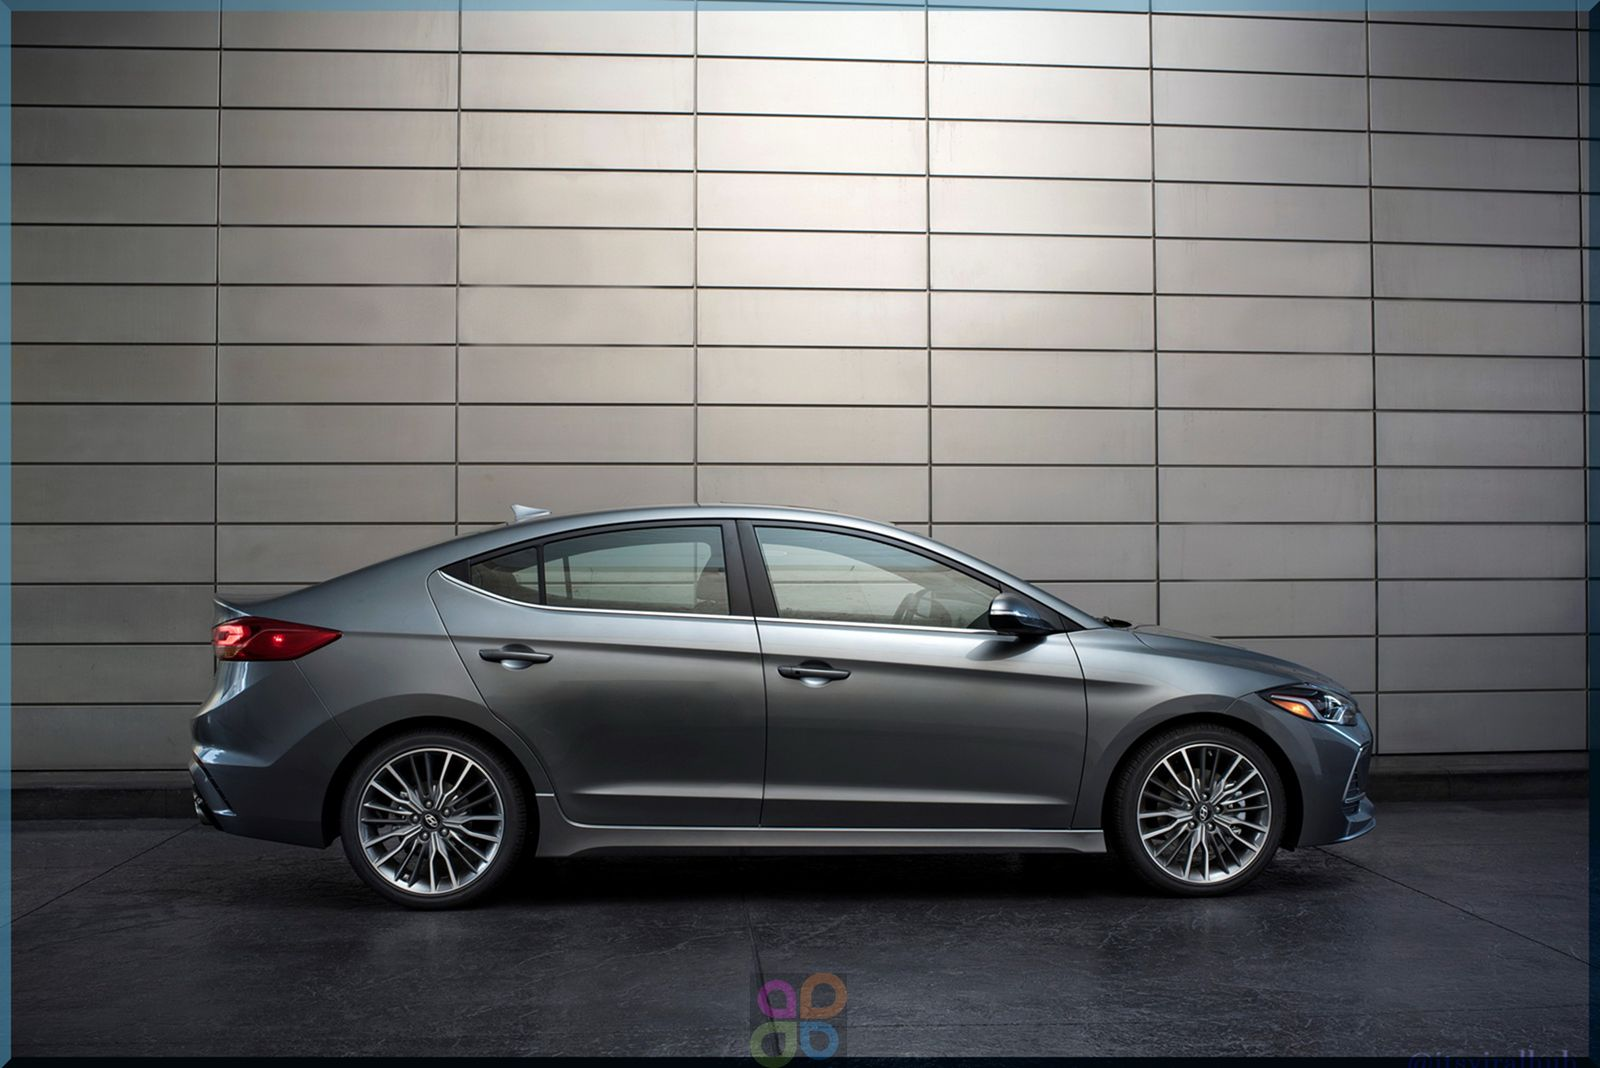 Hyundai Gives Elantra Sport Customers Couple Of Decisions; The Key Choice  To Make Is Between The Standard Six Speed Manual Transmission Or The  Discretionary ...